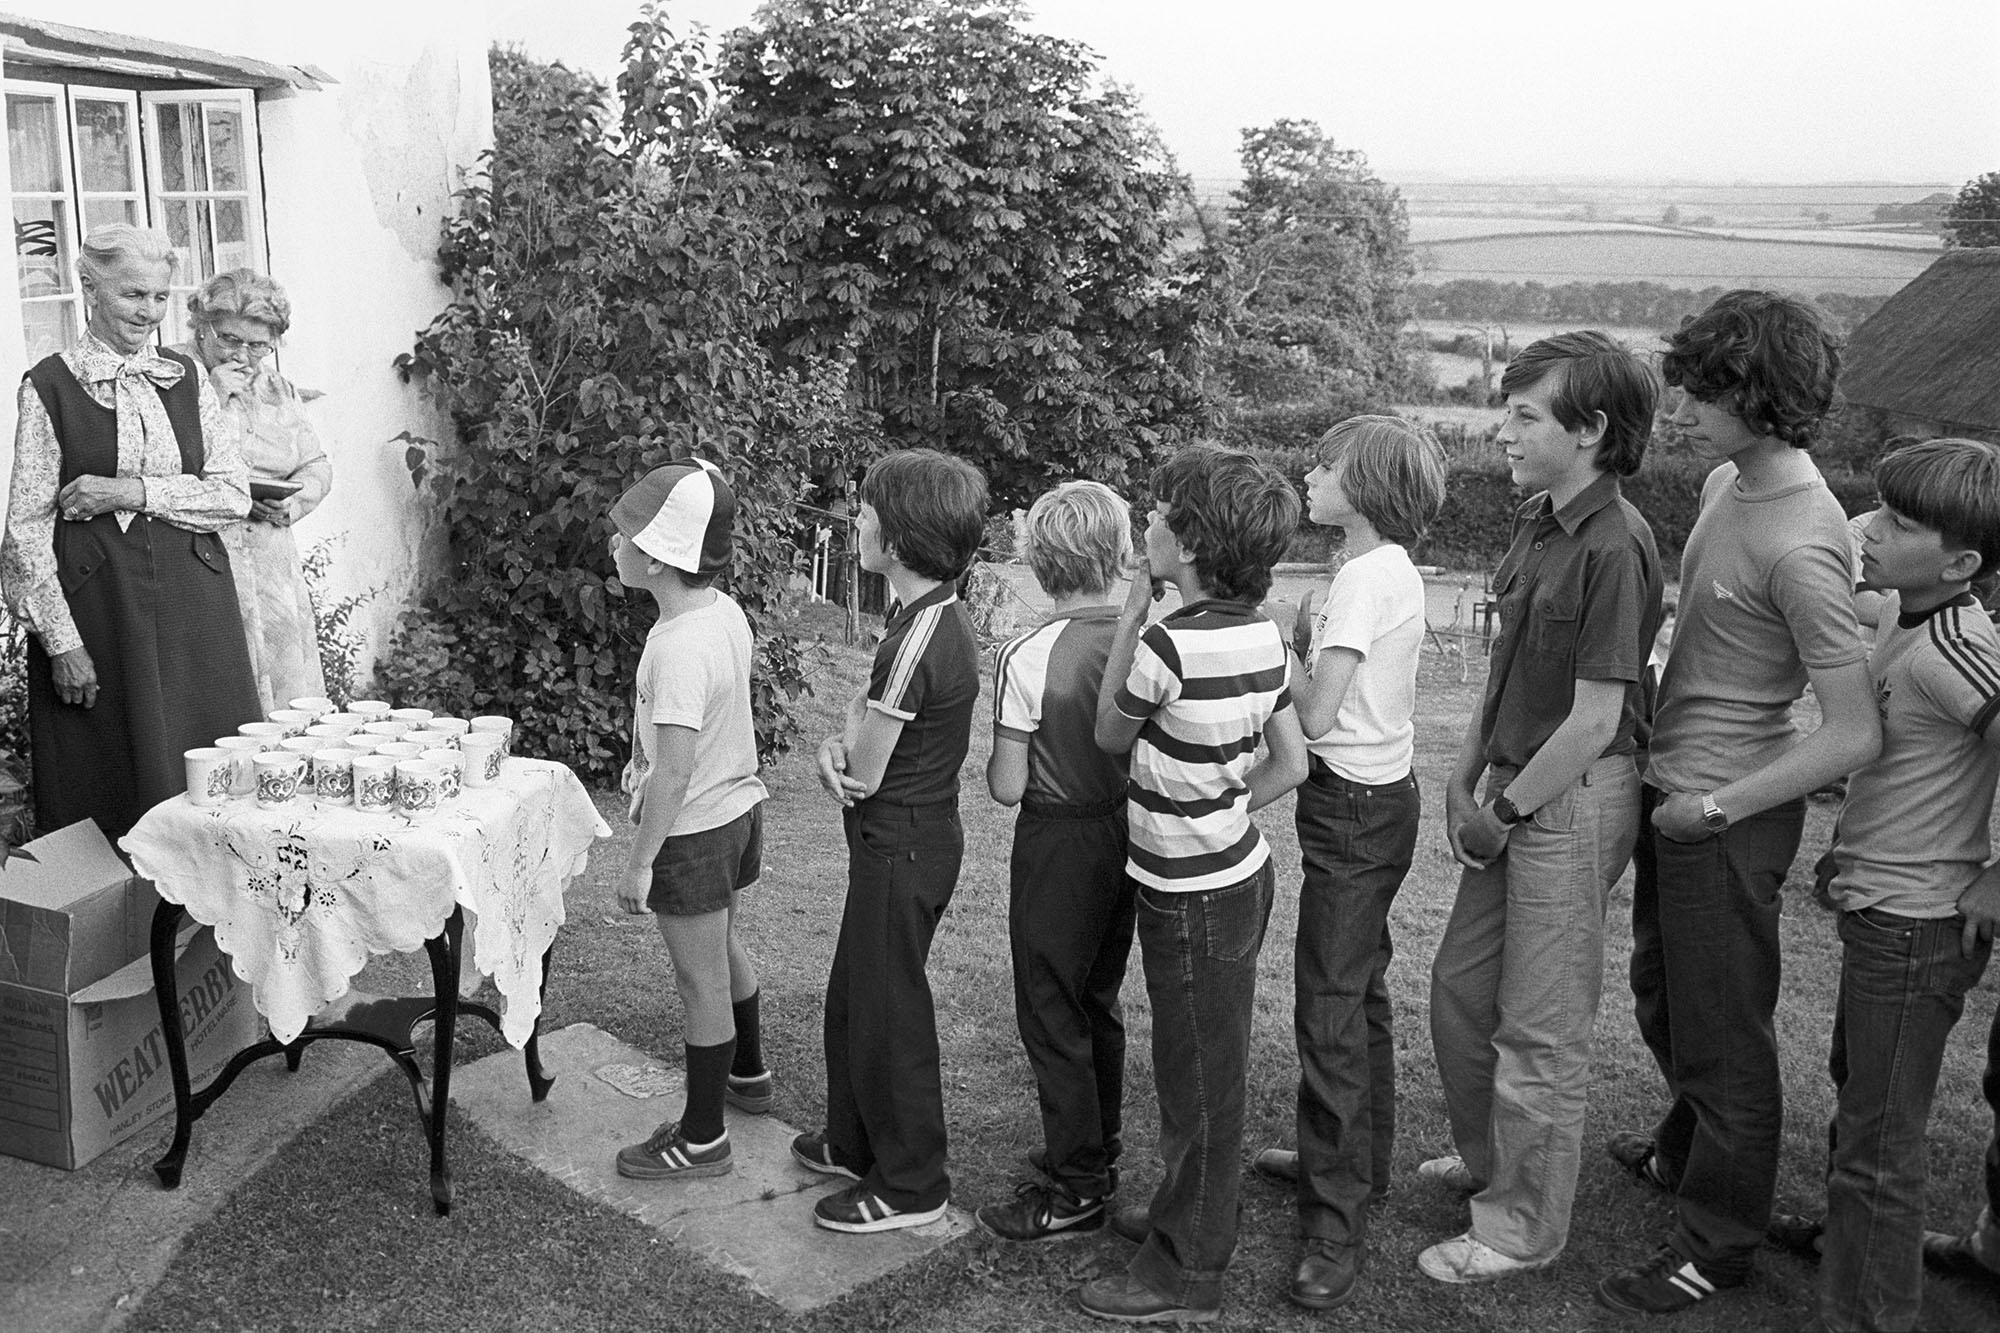 Royal Wedding. People queuing for royal mugs in front of cottage.<br /> [Children queueing up in a garden at Iddesleigh for the presentation of mugs to commemorate the Royal Wedding of Prince Charles and Lady Diana Spencer. Two ladies are waiting to present the mugs.]